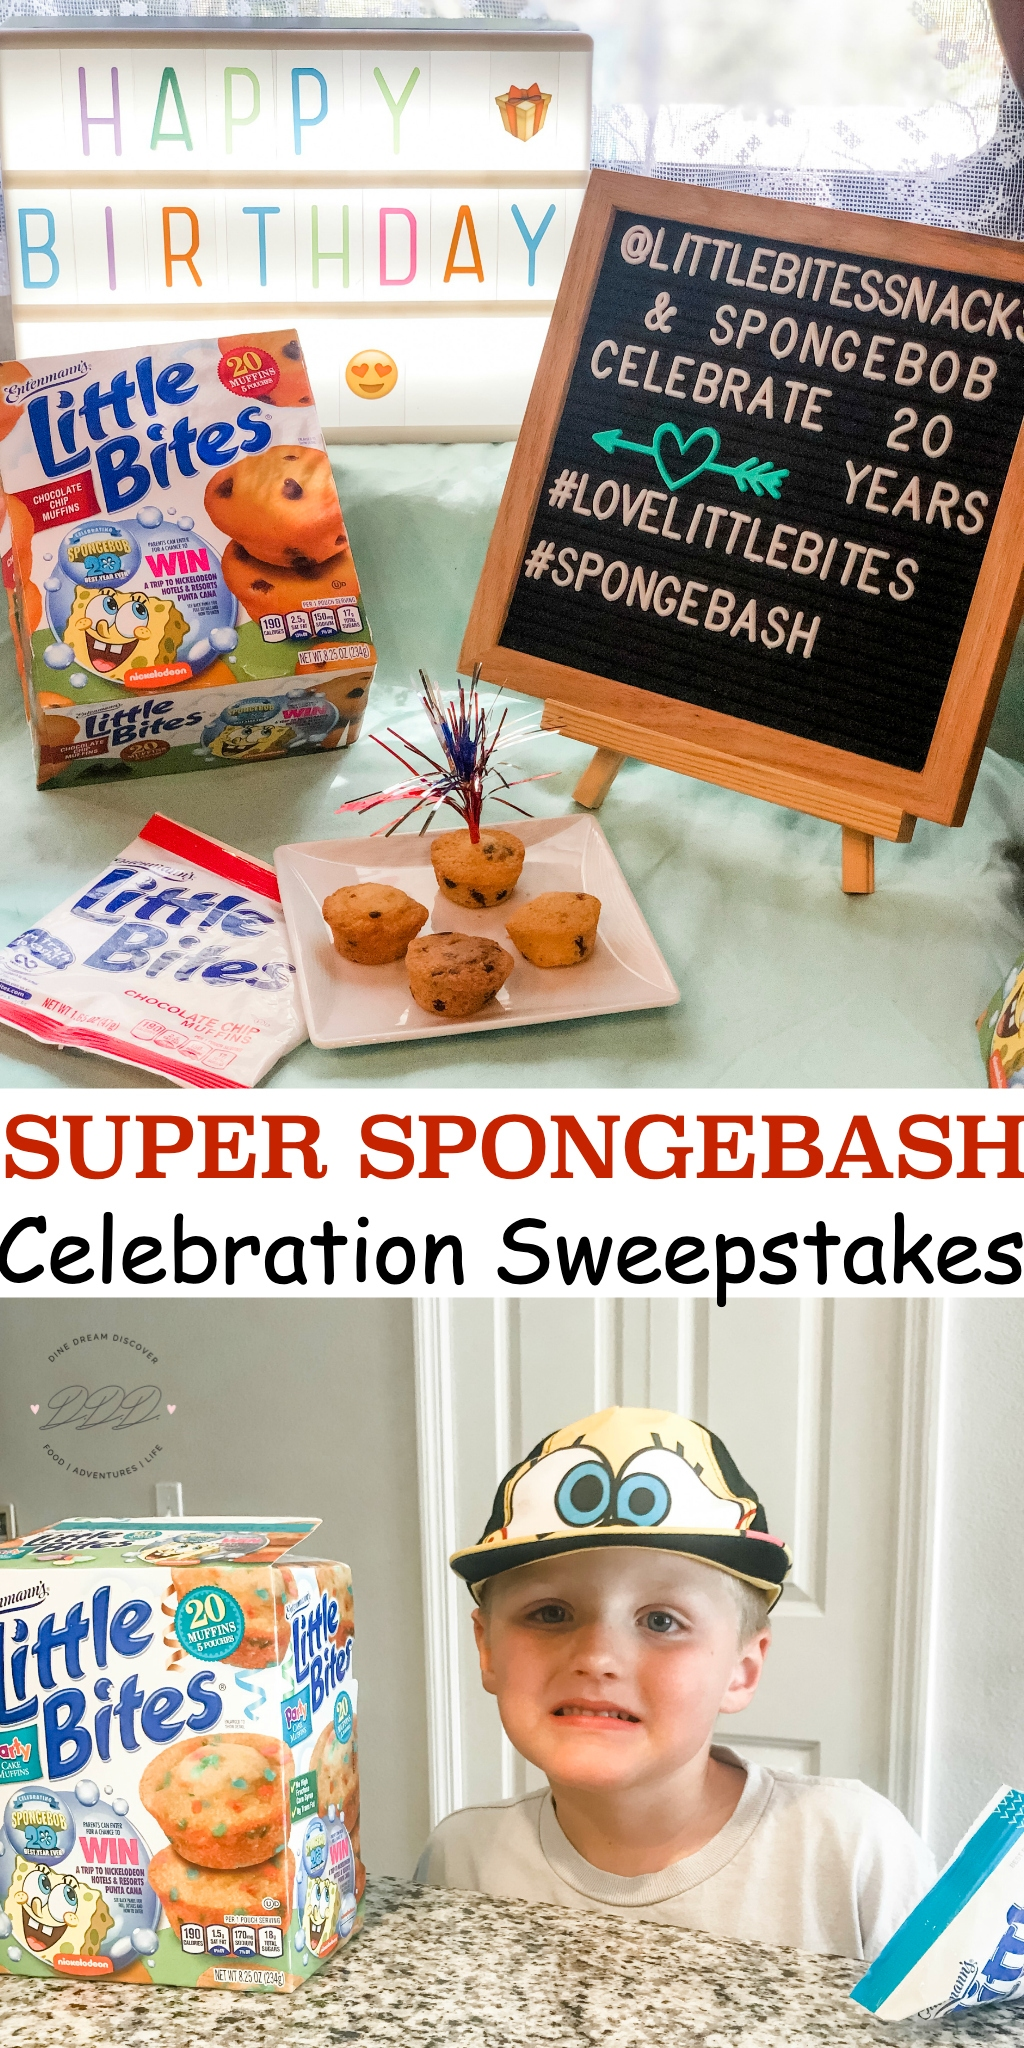 Super Spongebash Celebration Sweepstakes